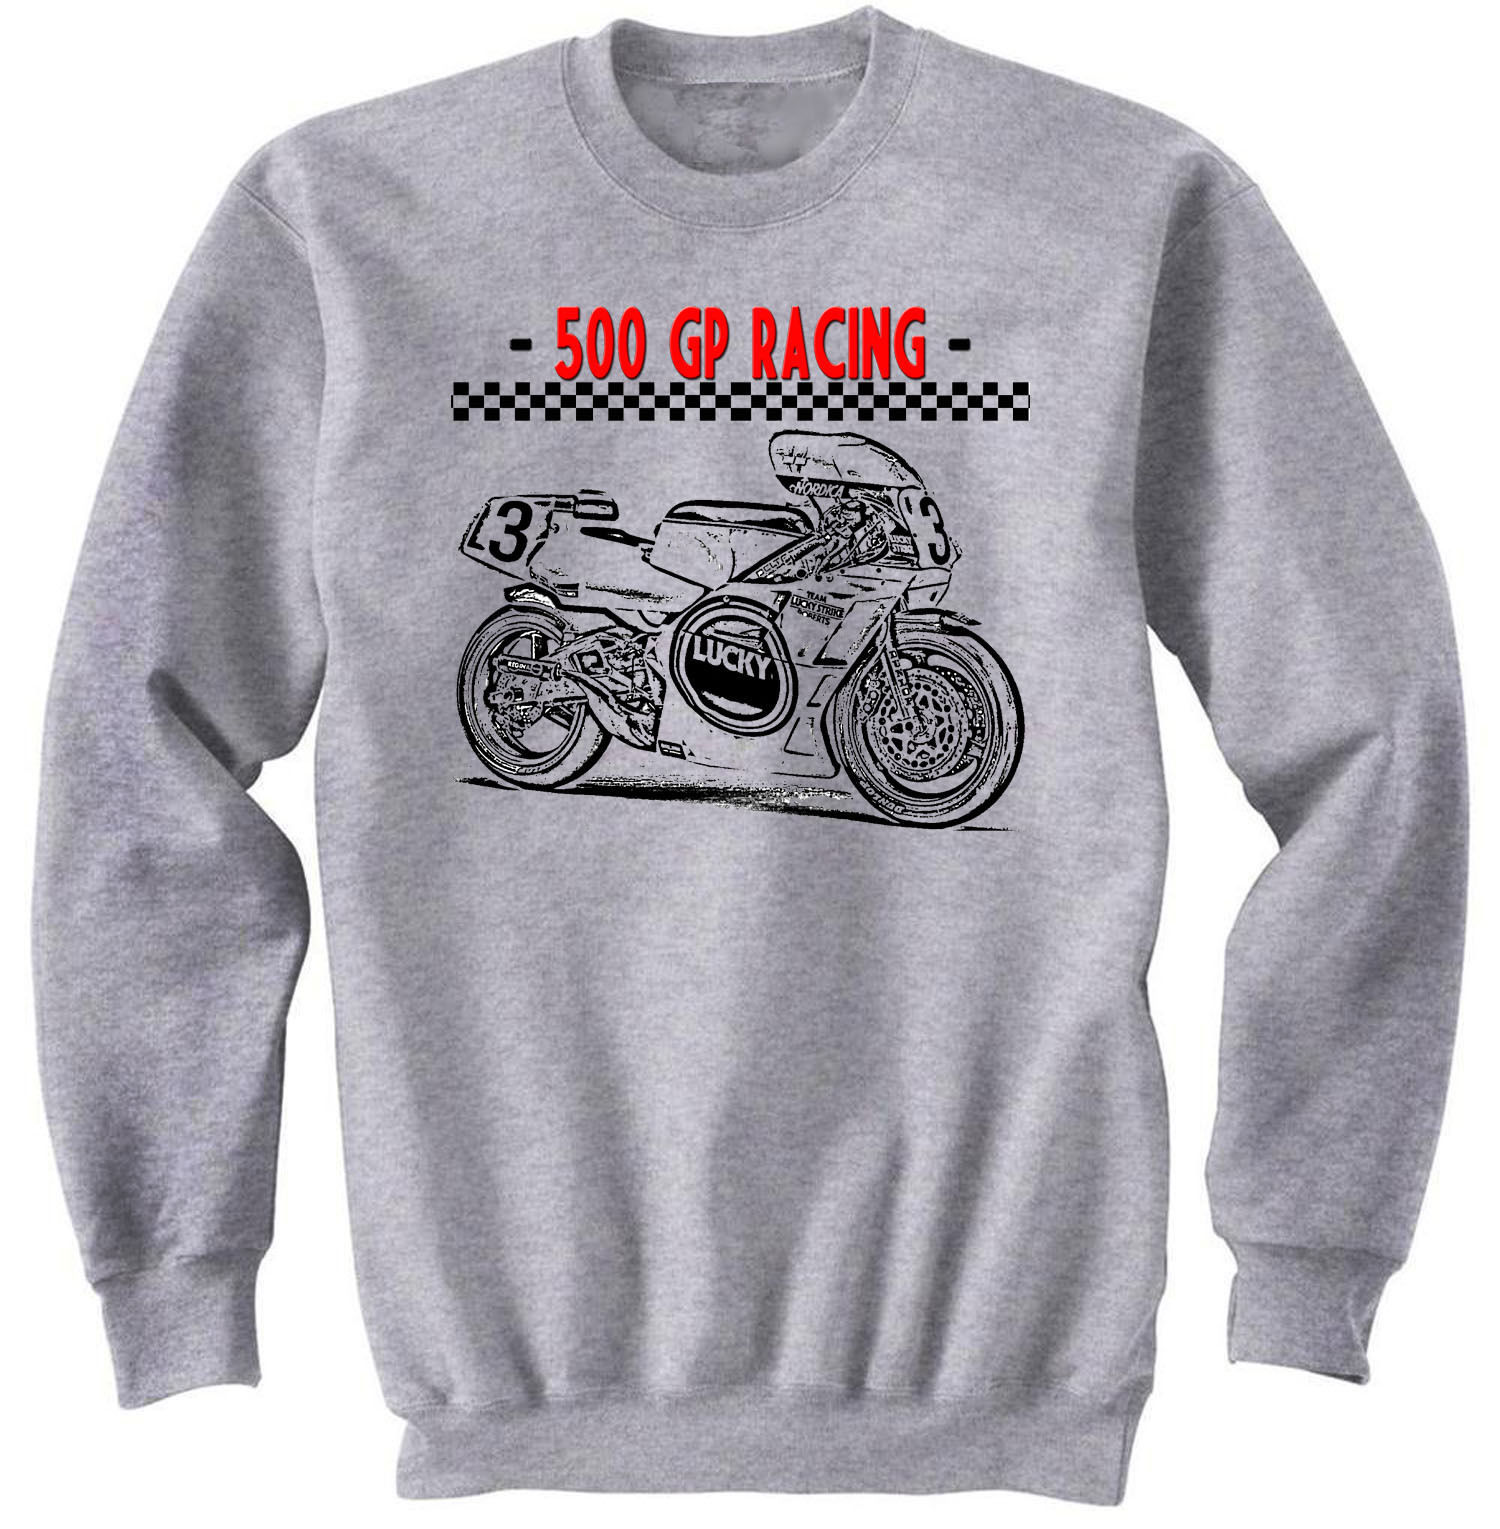 500 GP Racing Sweatshirt AL28AG0